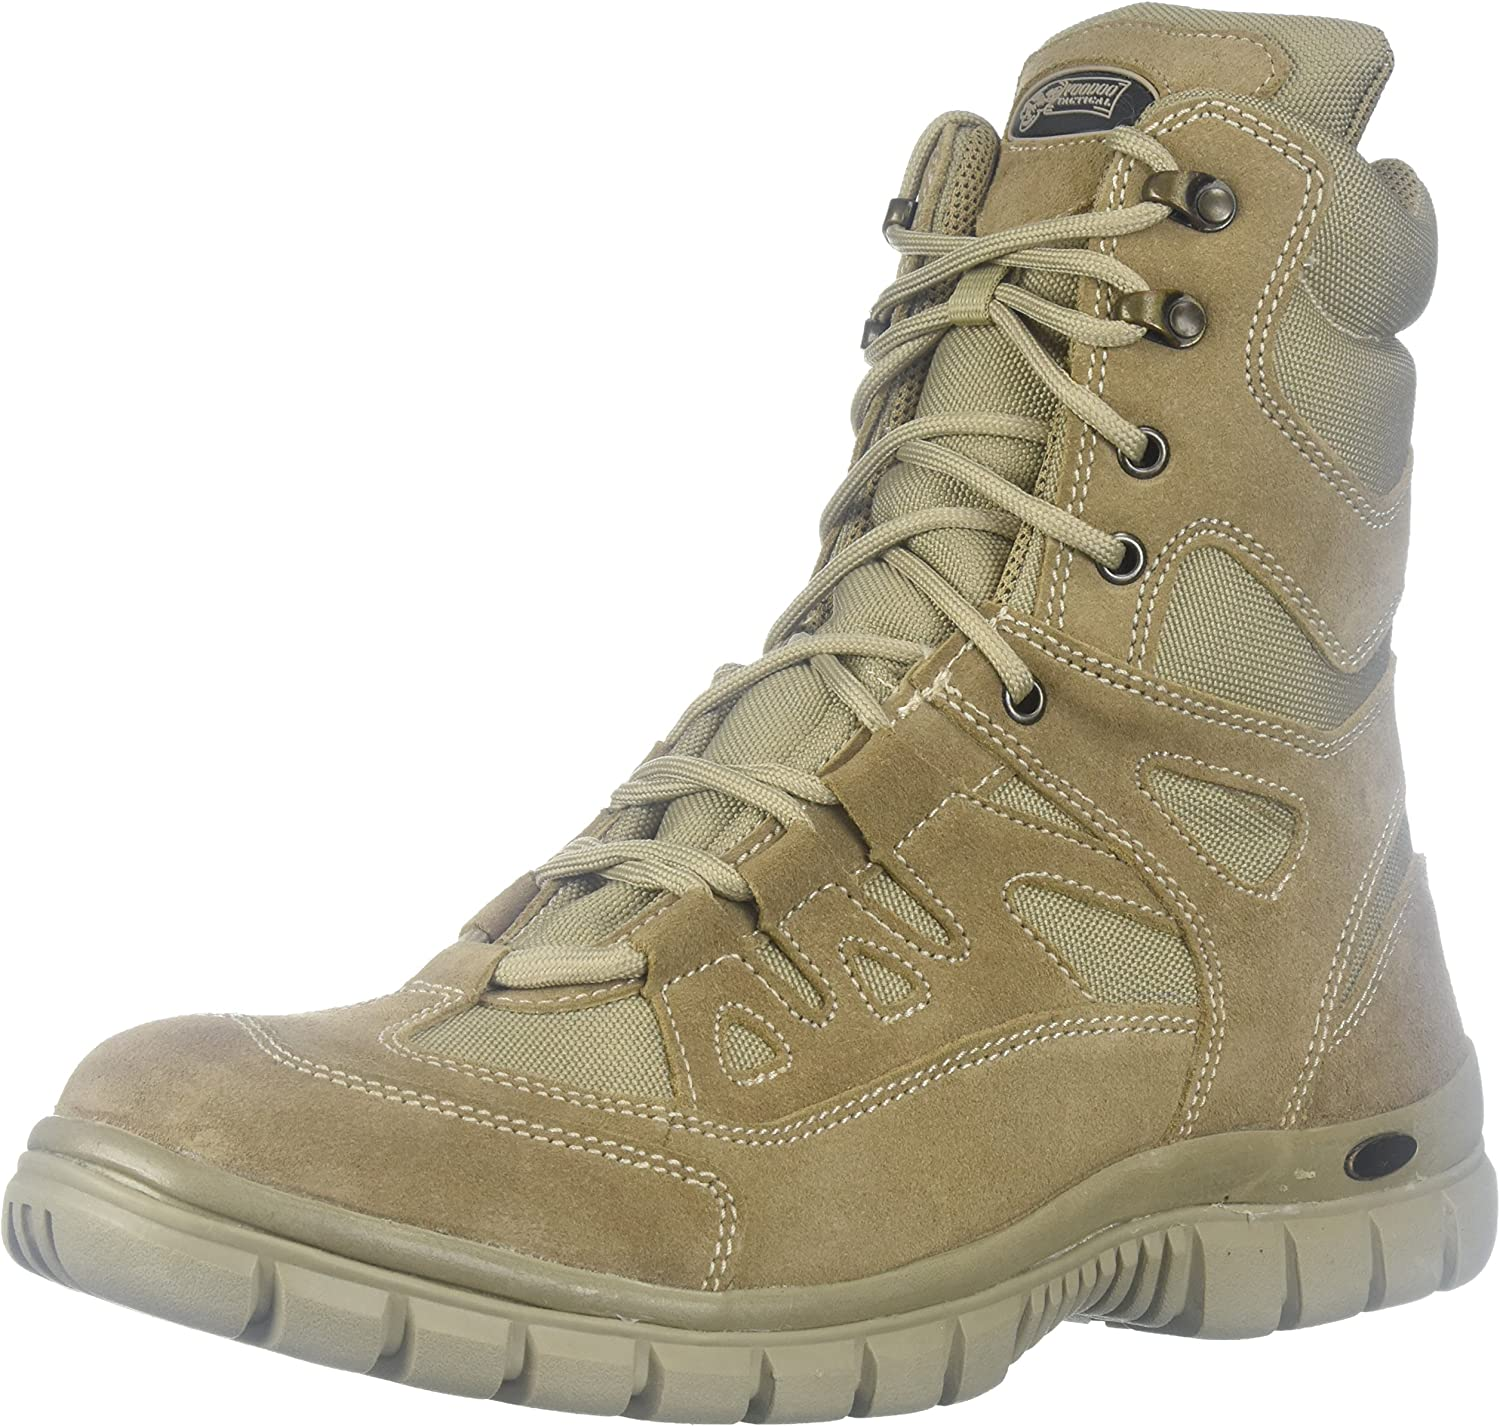 Voodoo Tactical 04-8479 9  Side Zip High Speed Tactical Boot, Desert Tan